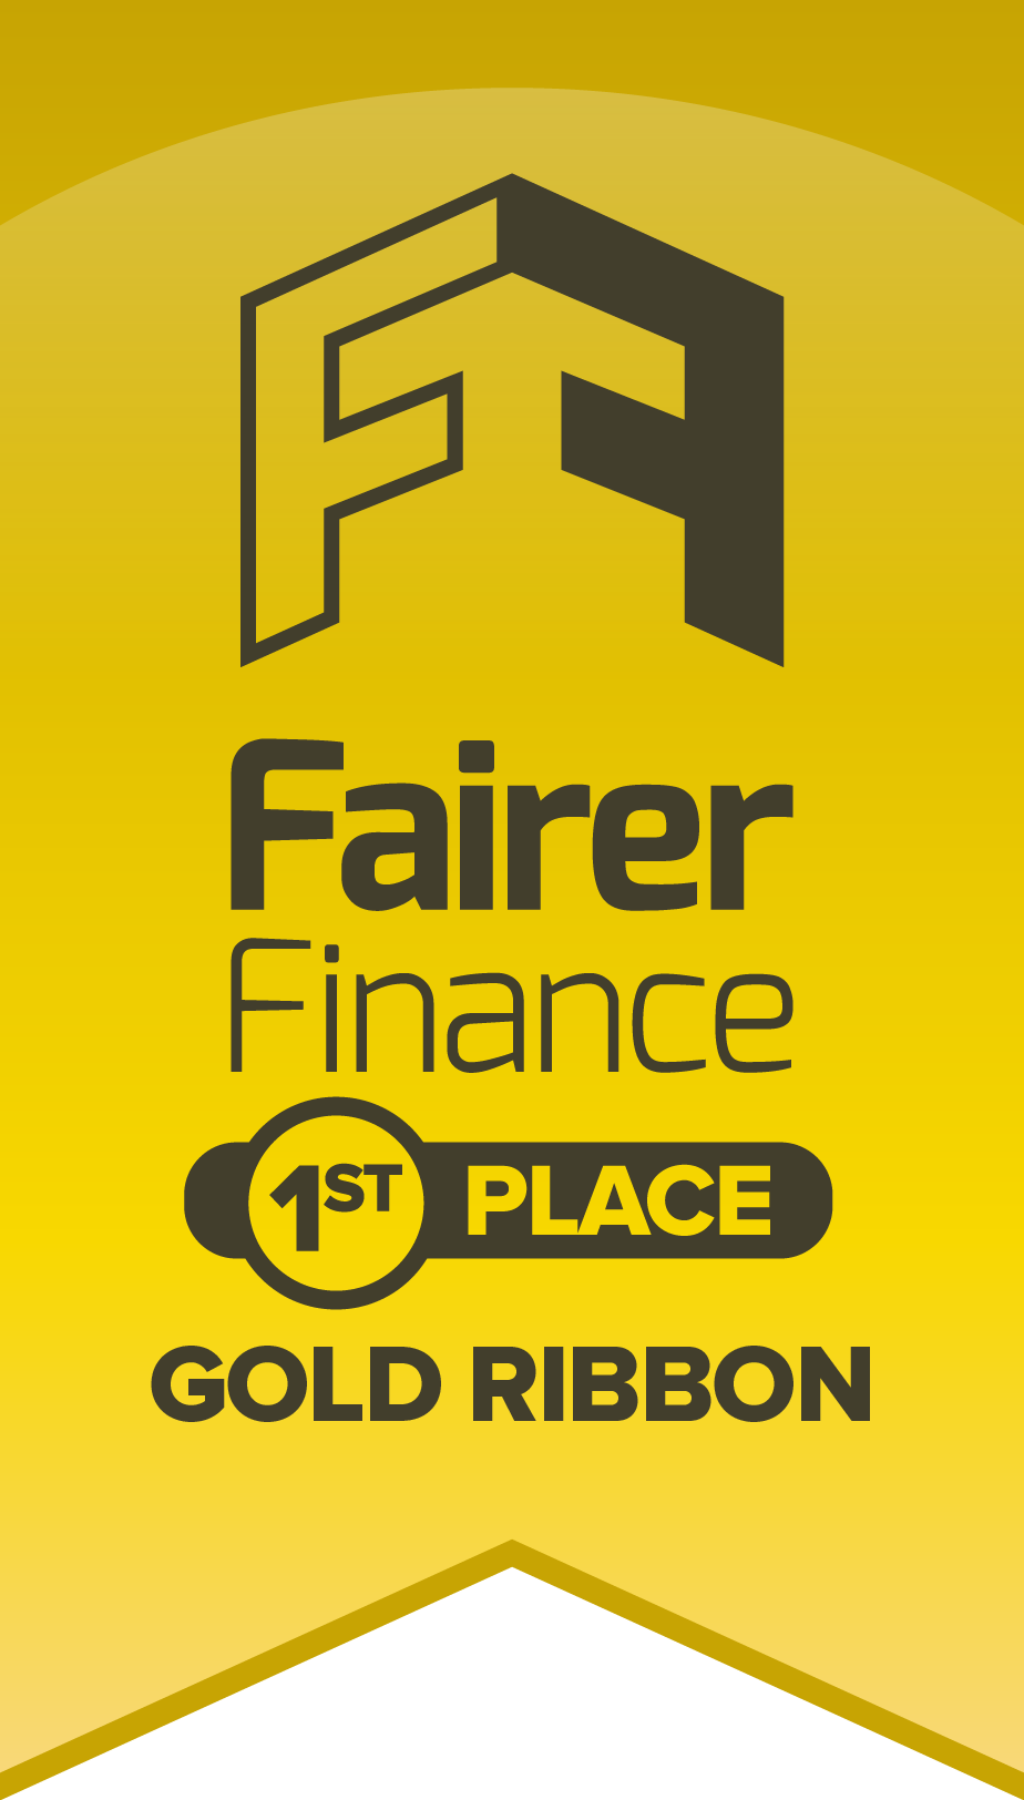 Gold ribbon: first place